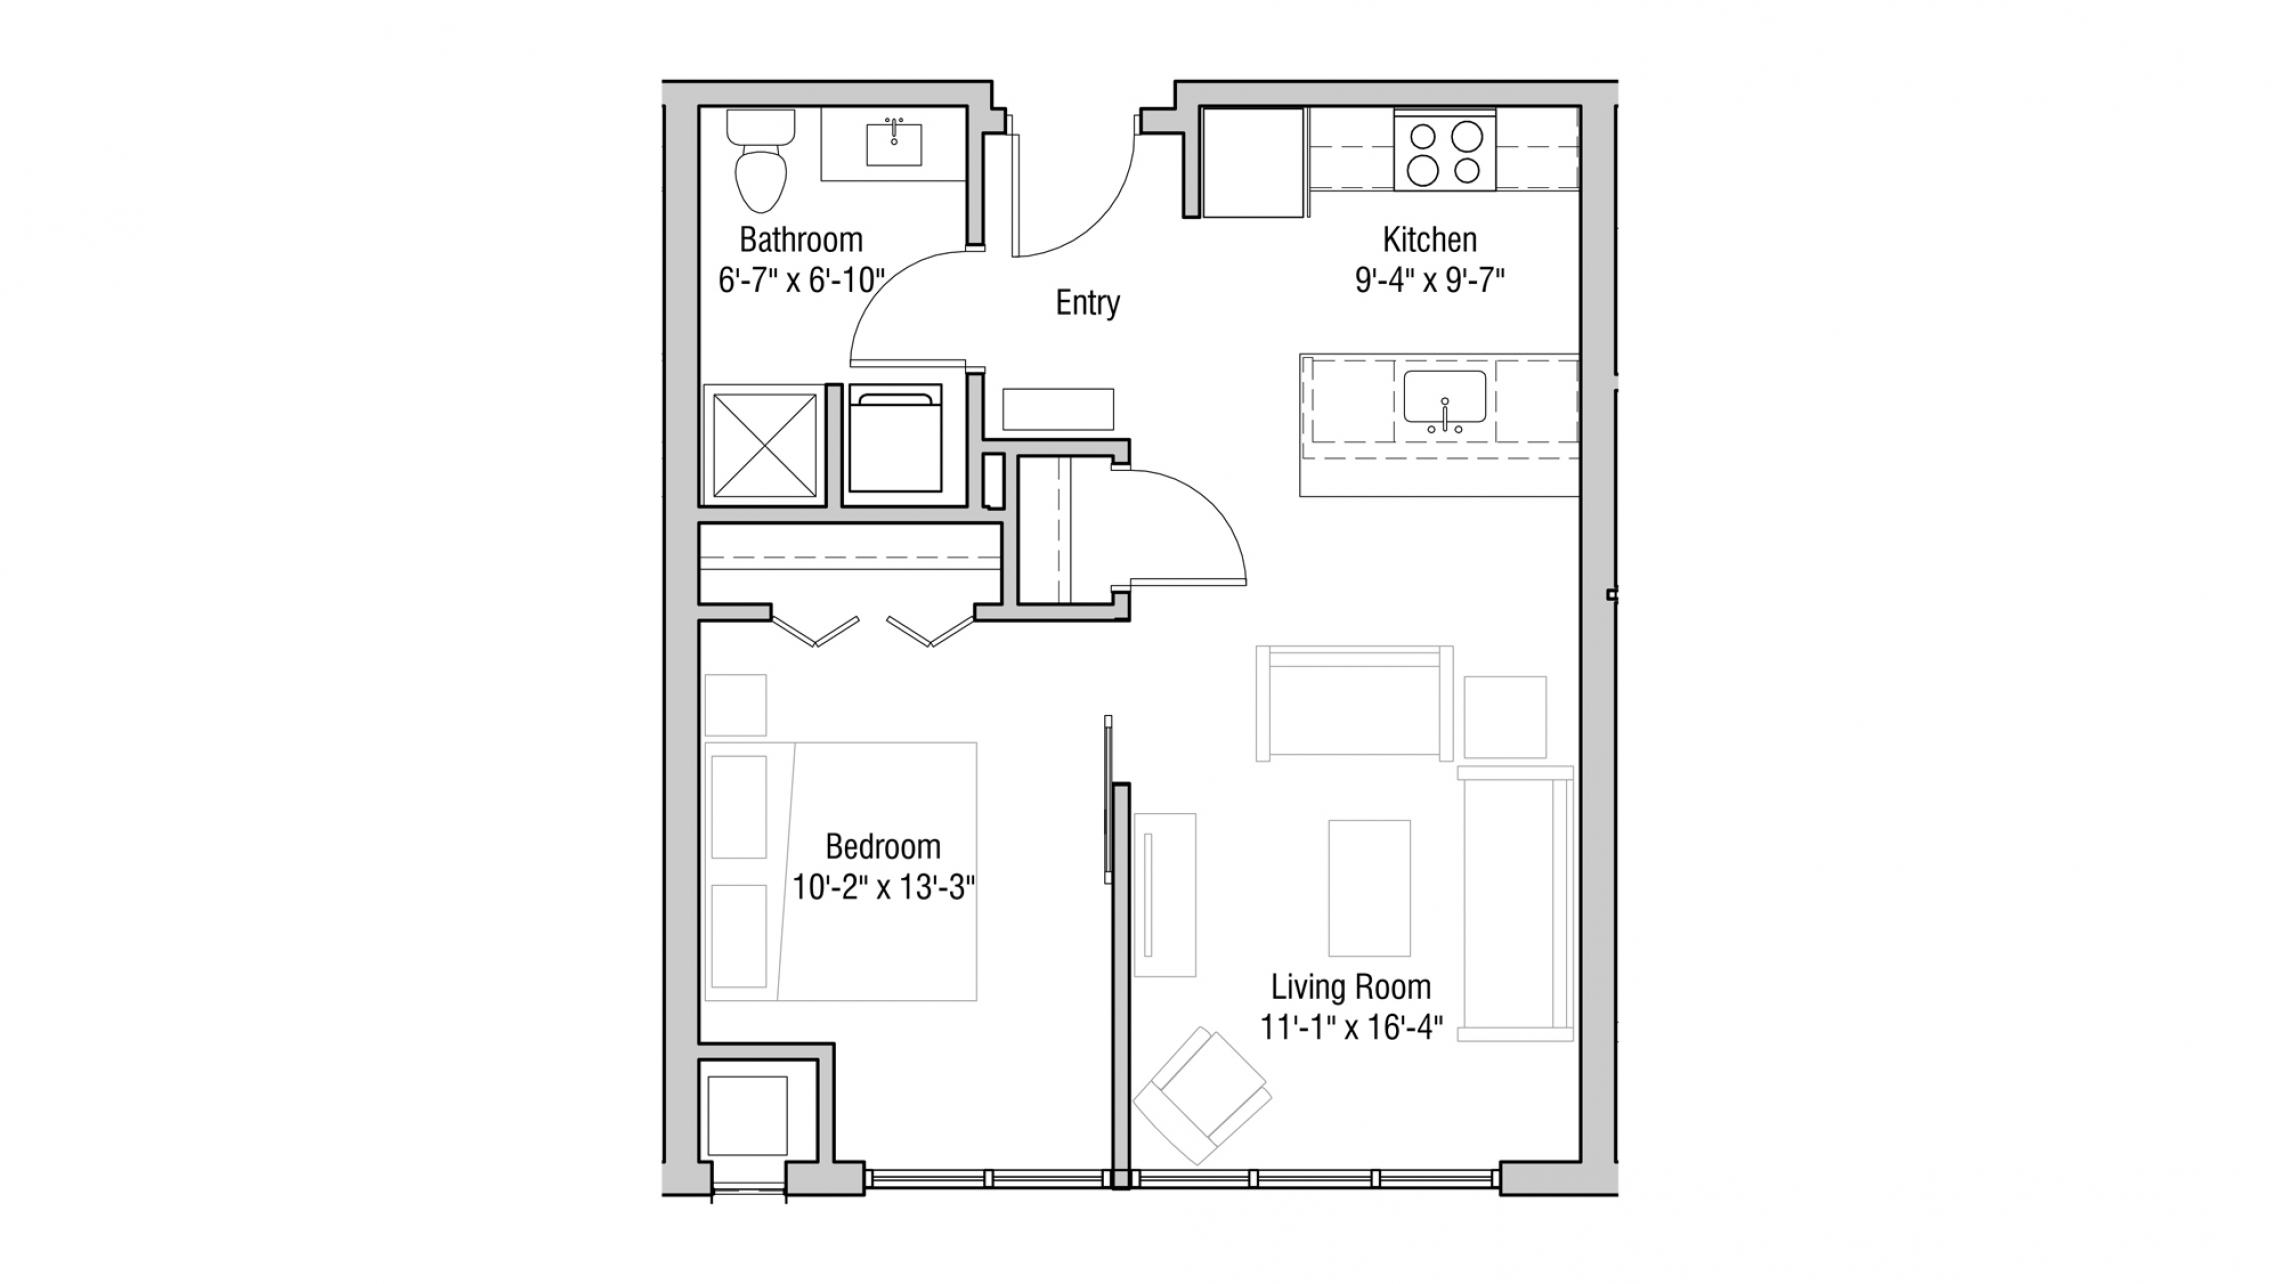 ULI Quarter Row 304 - One Bedroom, One Bathroom